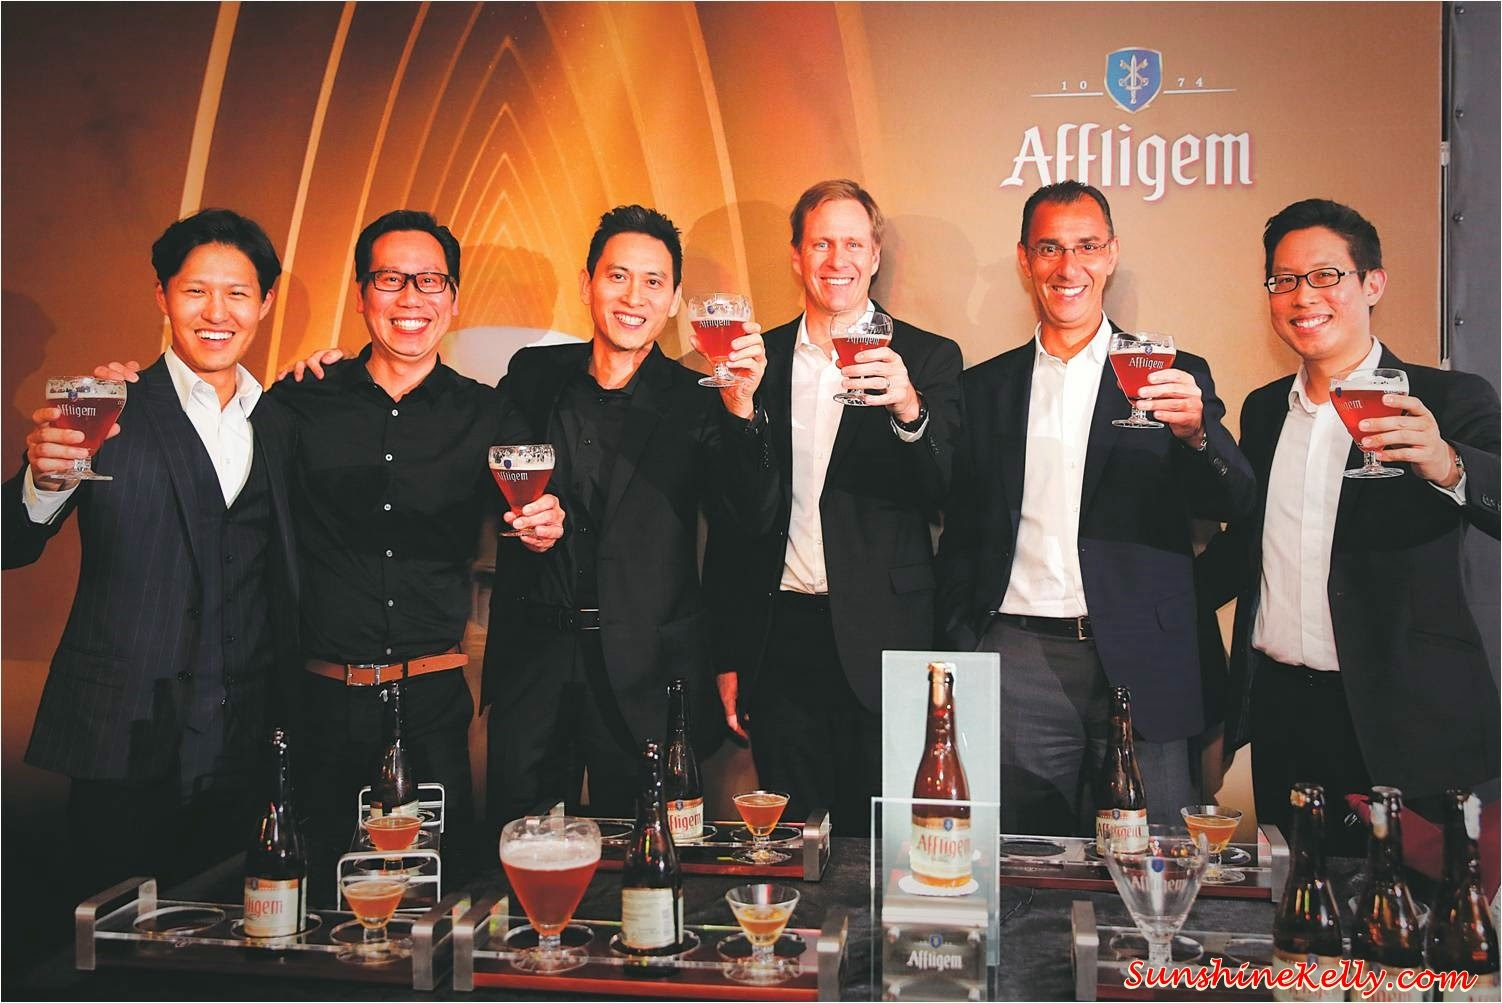 Affligem A Legacy of Craft Brew, Affligem, Craft Brew, Belgium Beer, Belgian Beer, Belgian Brew, Affligem Media Launch Hilton KL